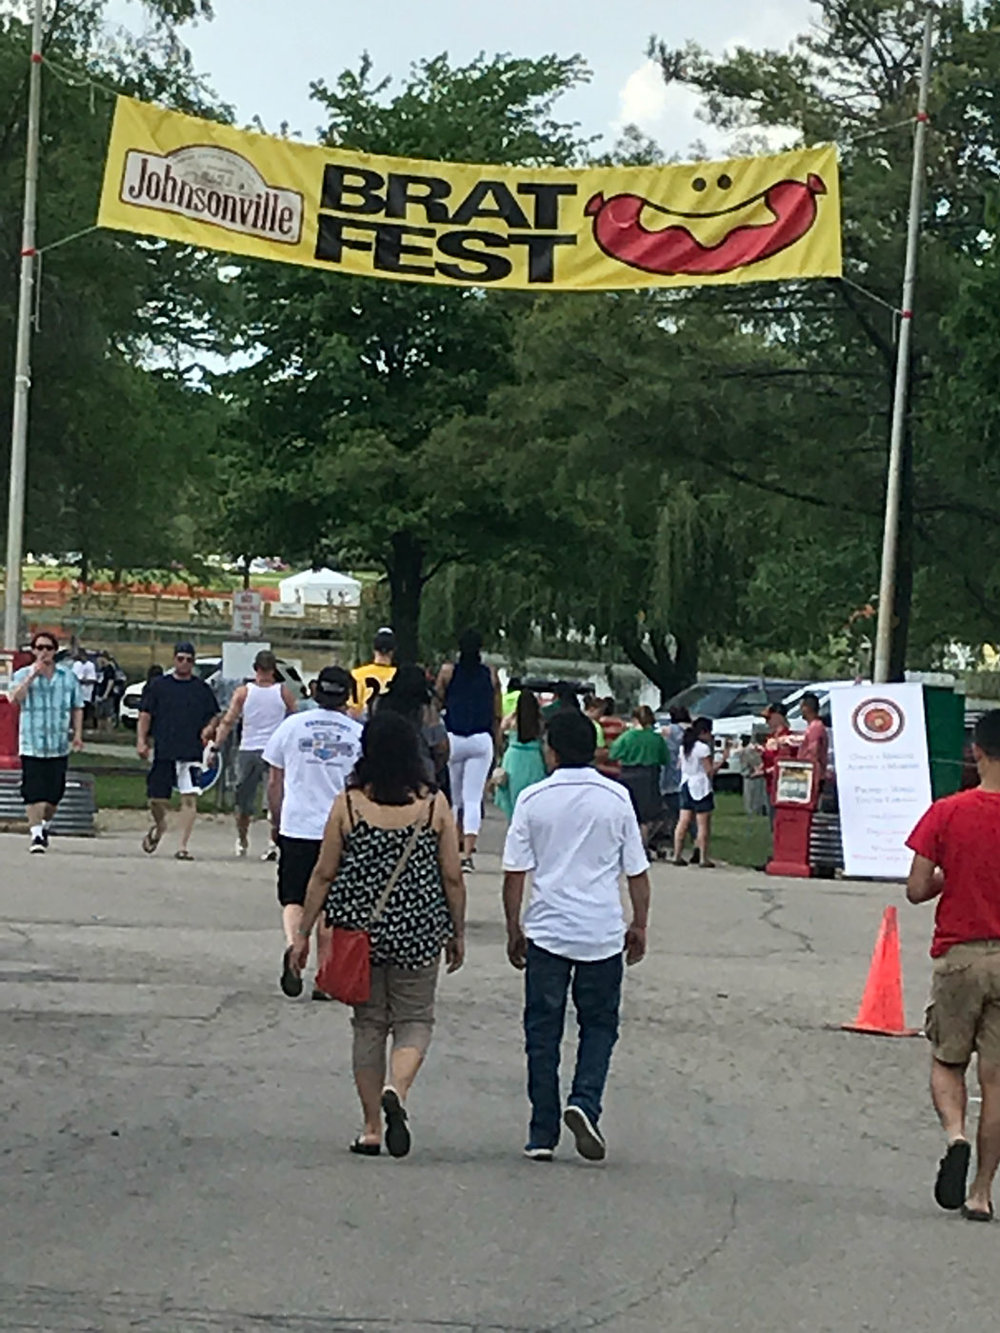 Brat fest! ...and a smiling brat to welcome us!